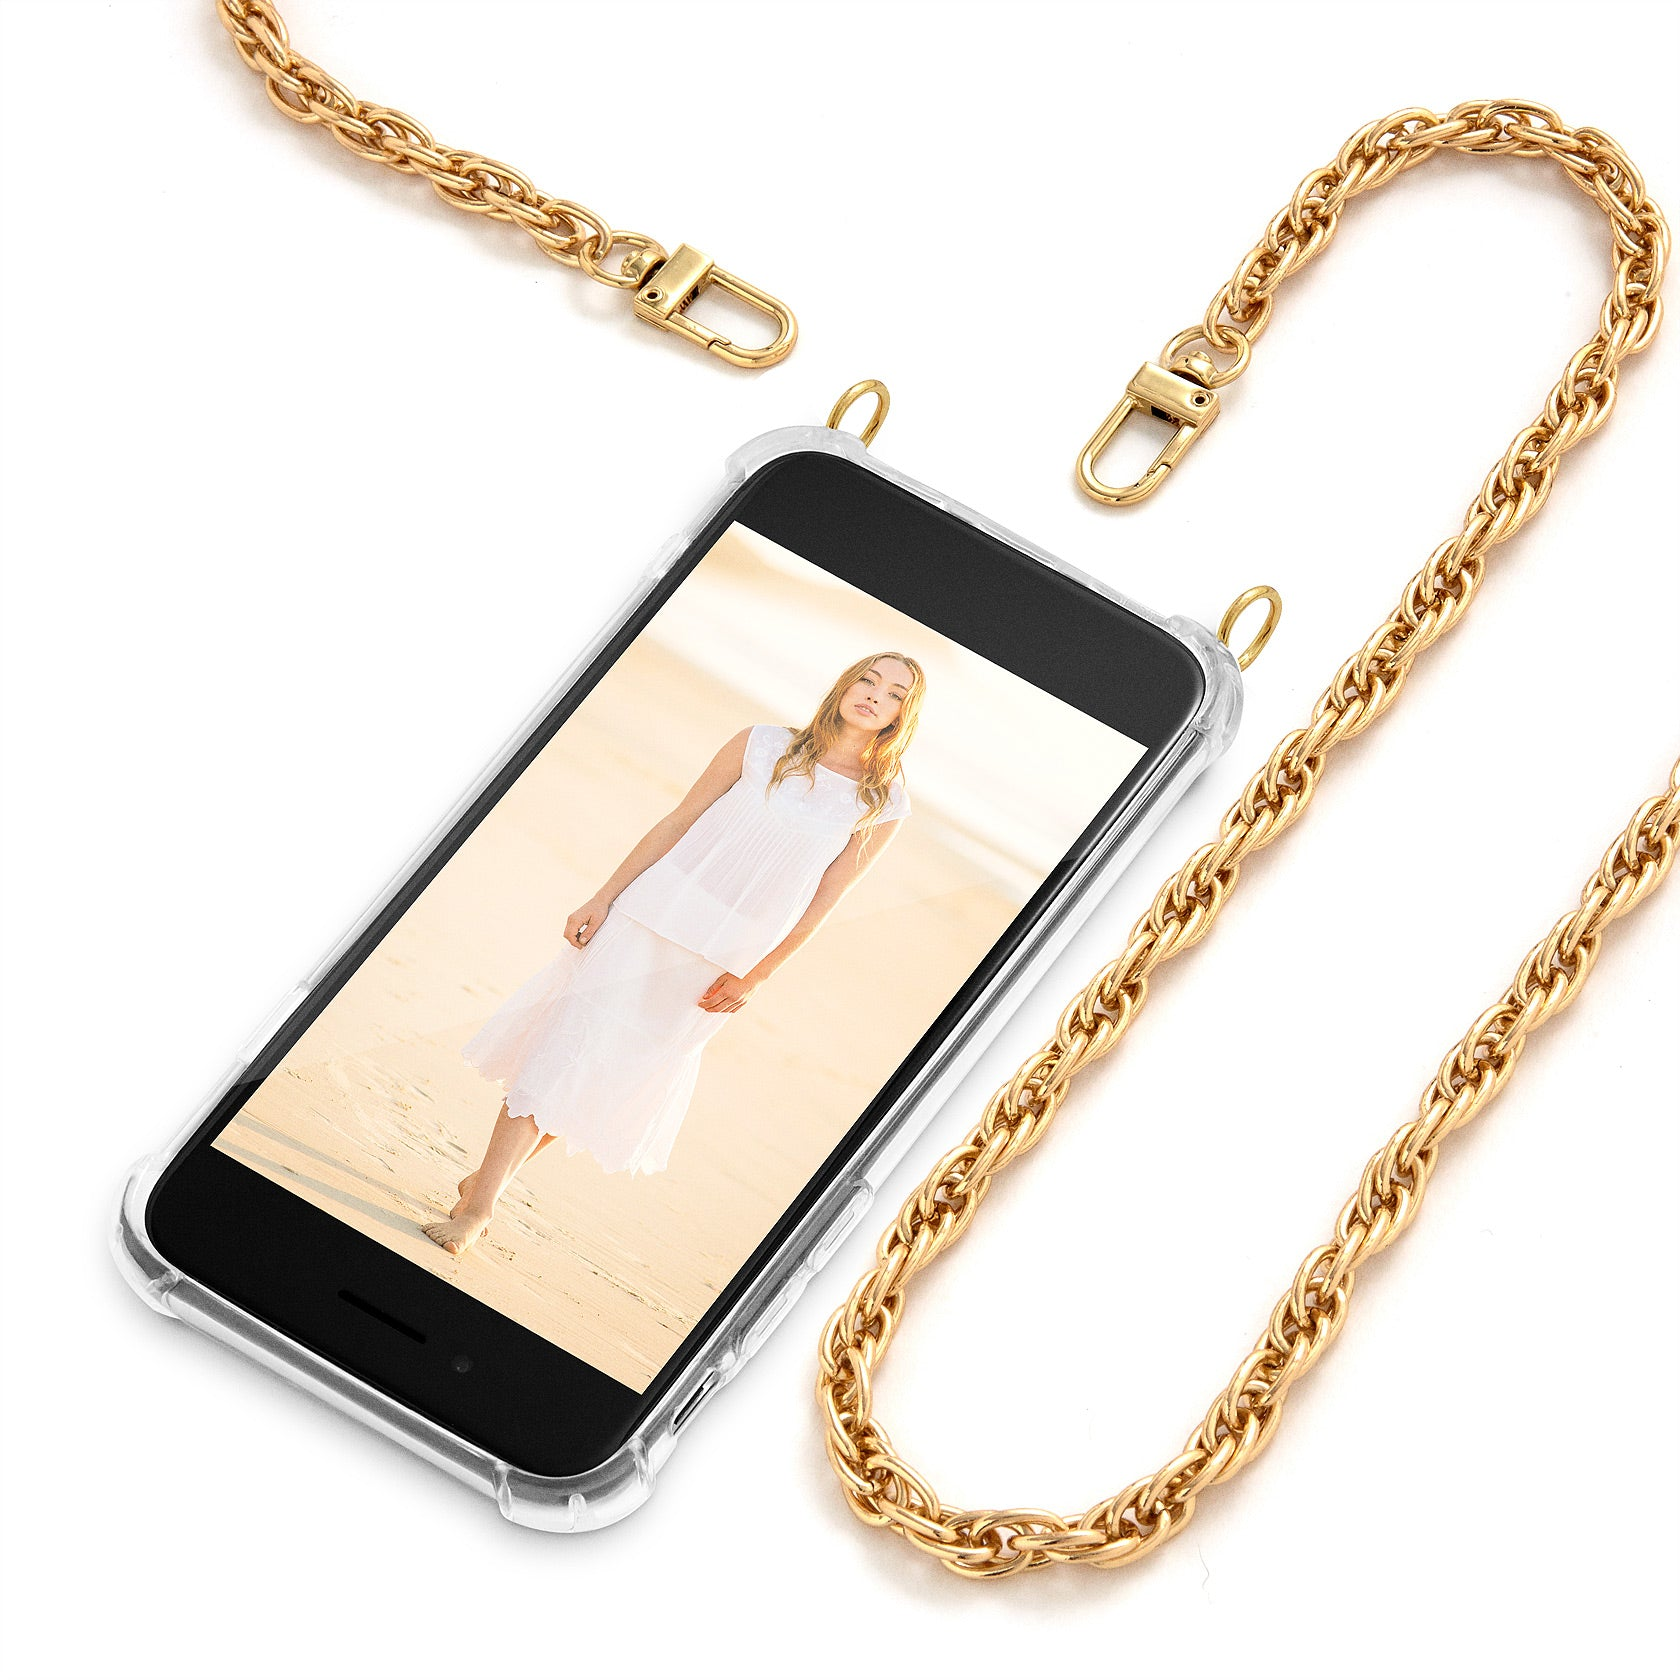 Cross Body Phone Case Necklace | N°7 GLAM GOLD | Cicerly